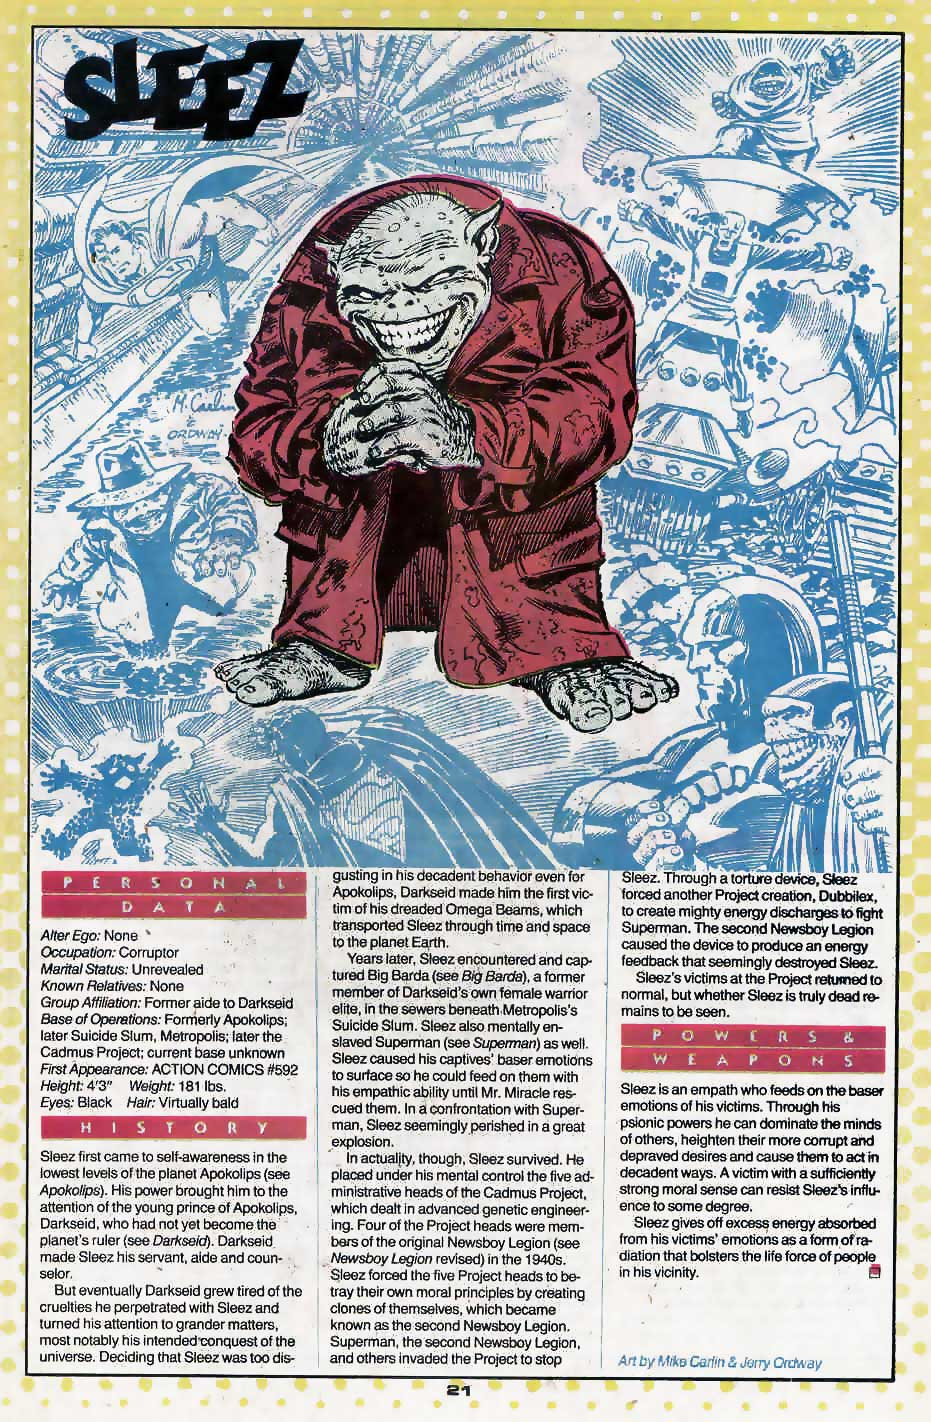 Who's Who Update 88 #3 Sleez by Mike Carlin and Jerry Ordway